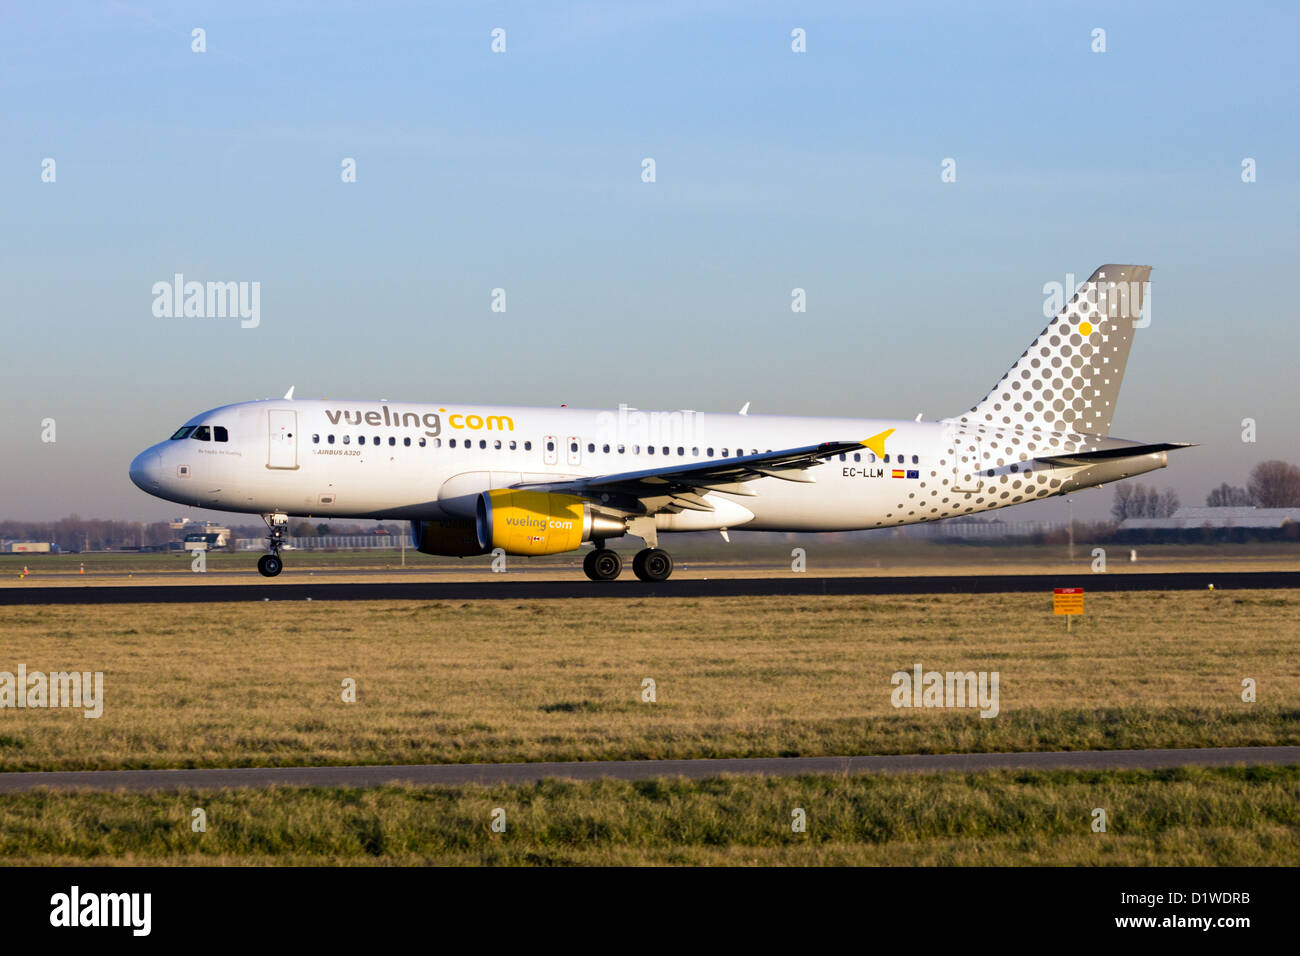 Vueling Airbus 319 take off - Stock Image